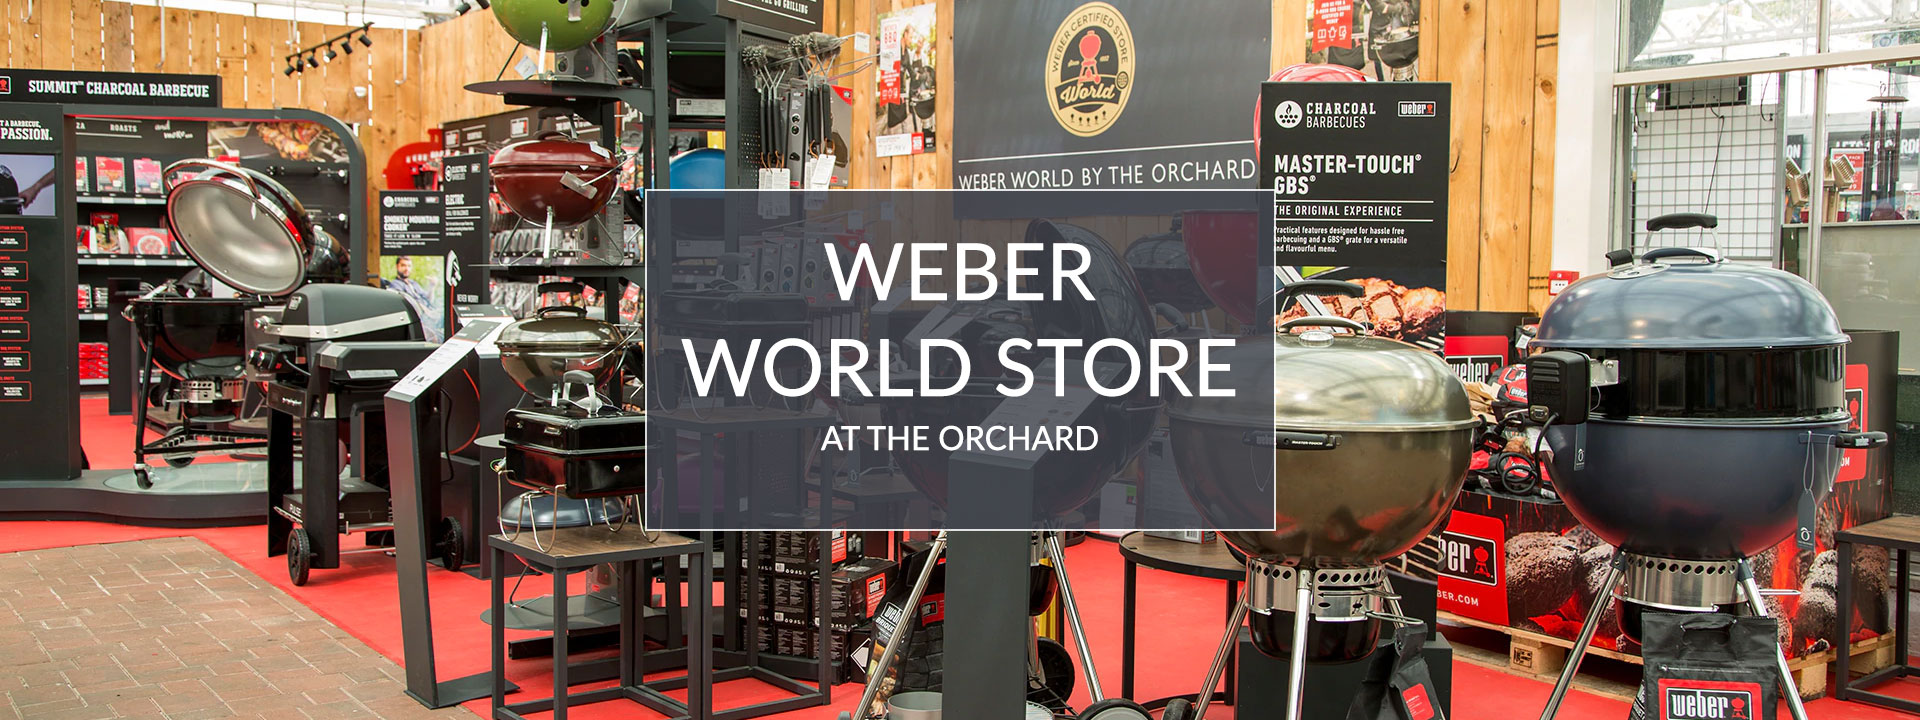 Weber World Store at The Orchard